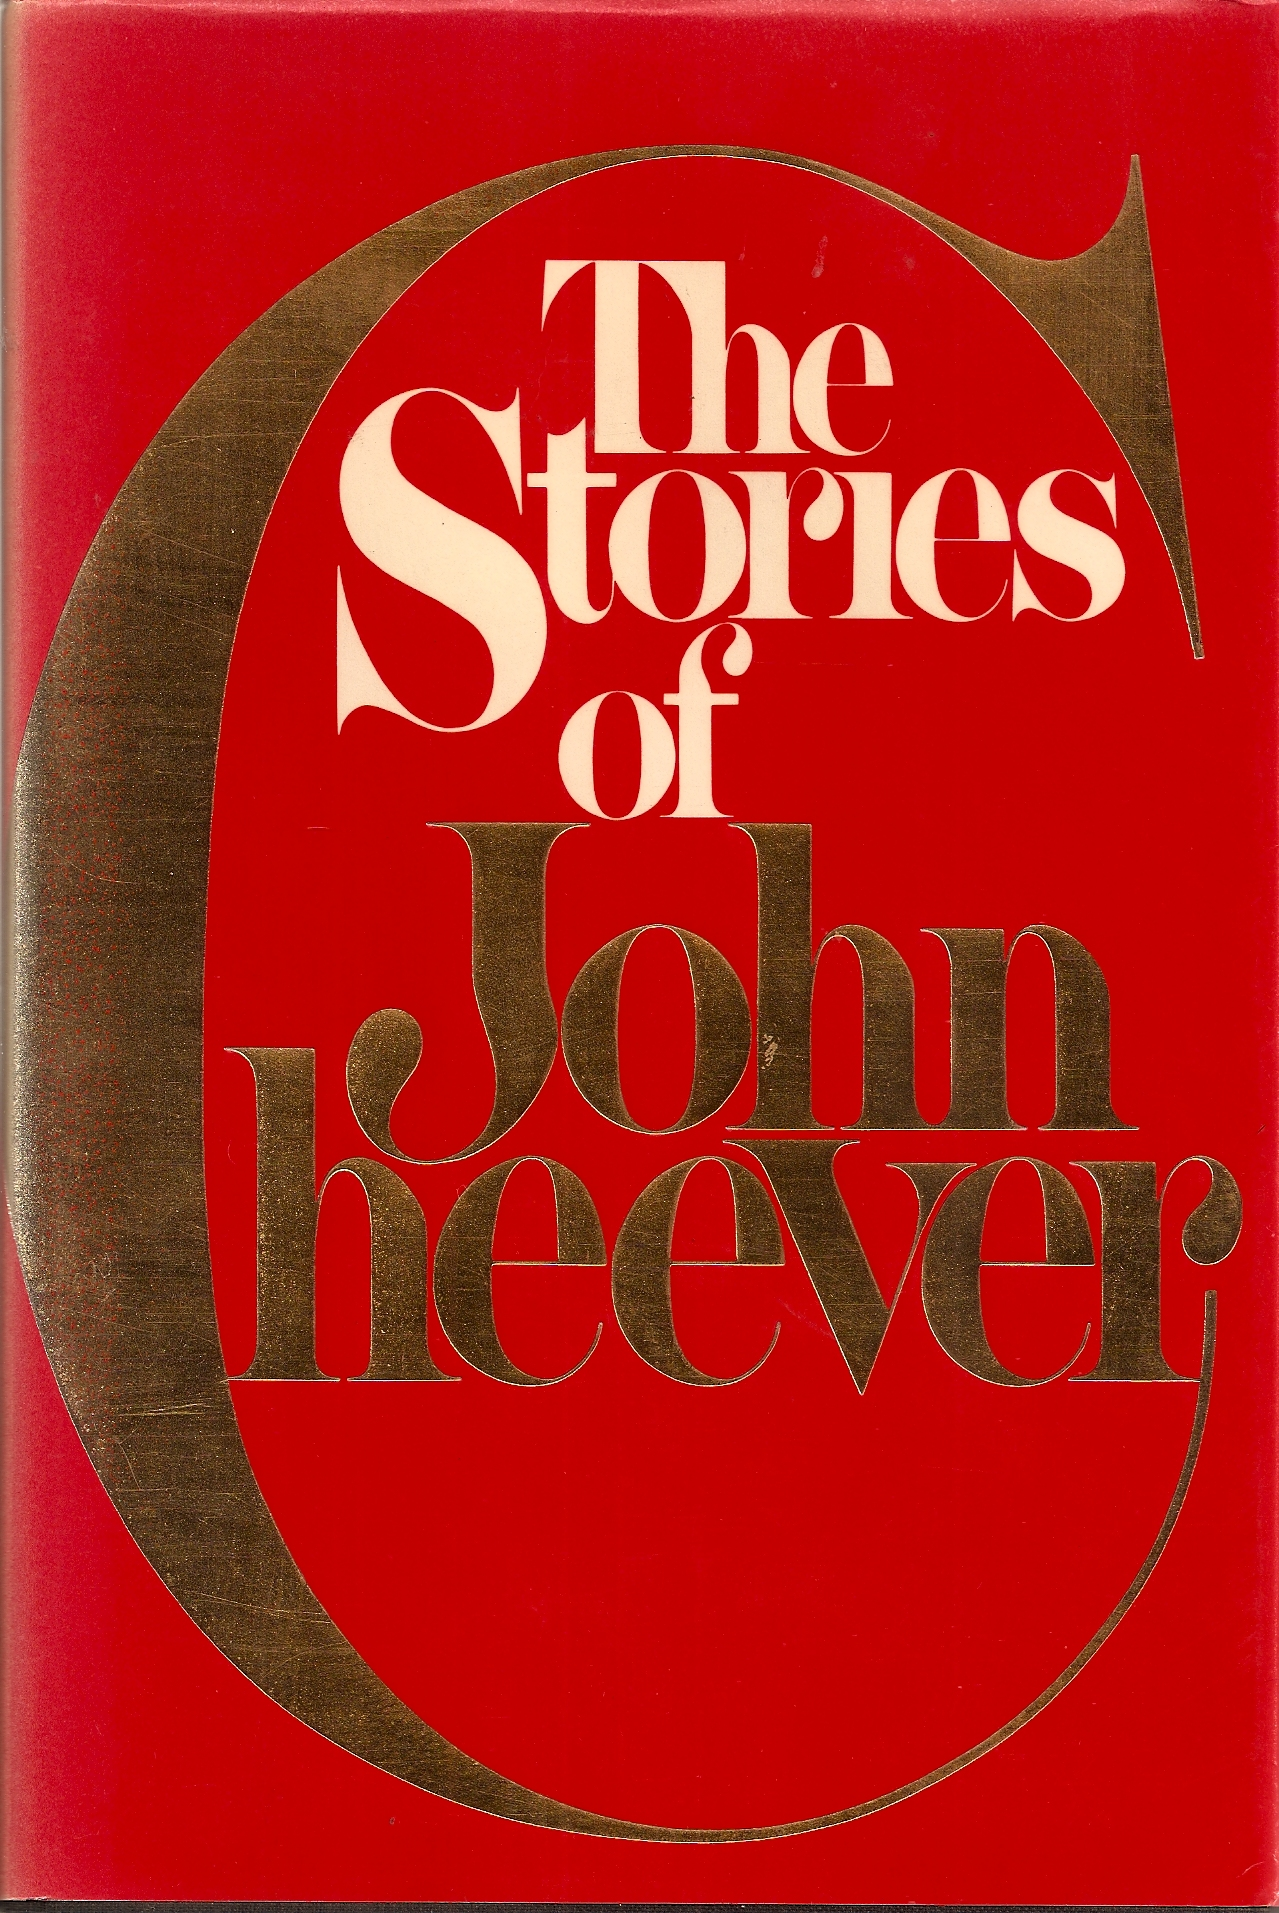 john cheevers story reunion an analysis Excerpt he paid the bill, and i followed him out of that restaurant into another here the waiters wore pink jackets like hunting coats, and there was a lot of horse tack on the walls.